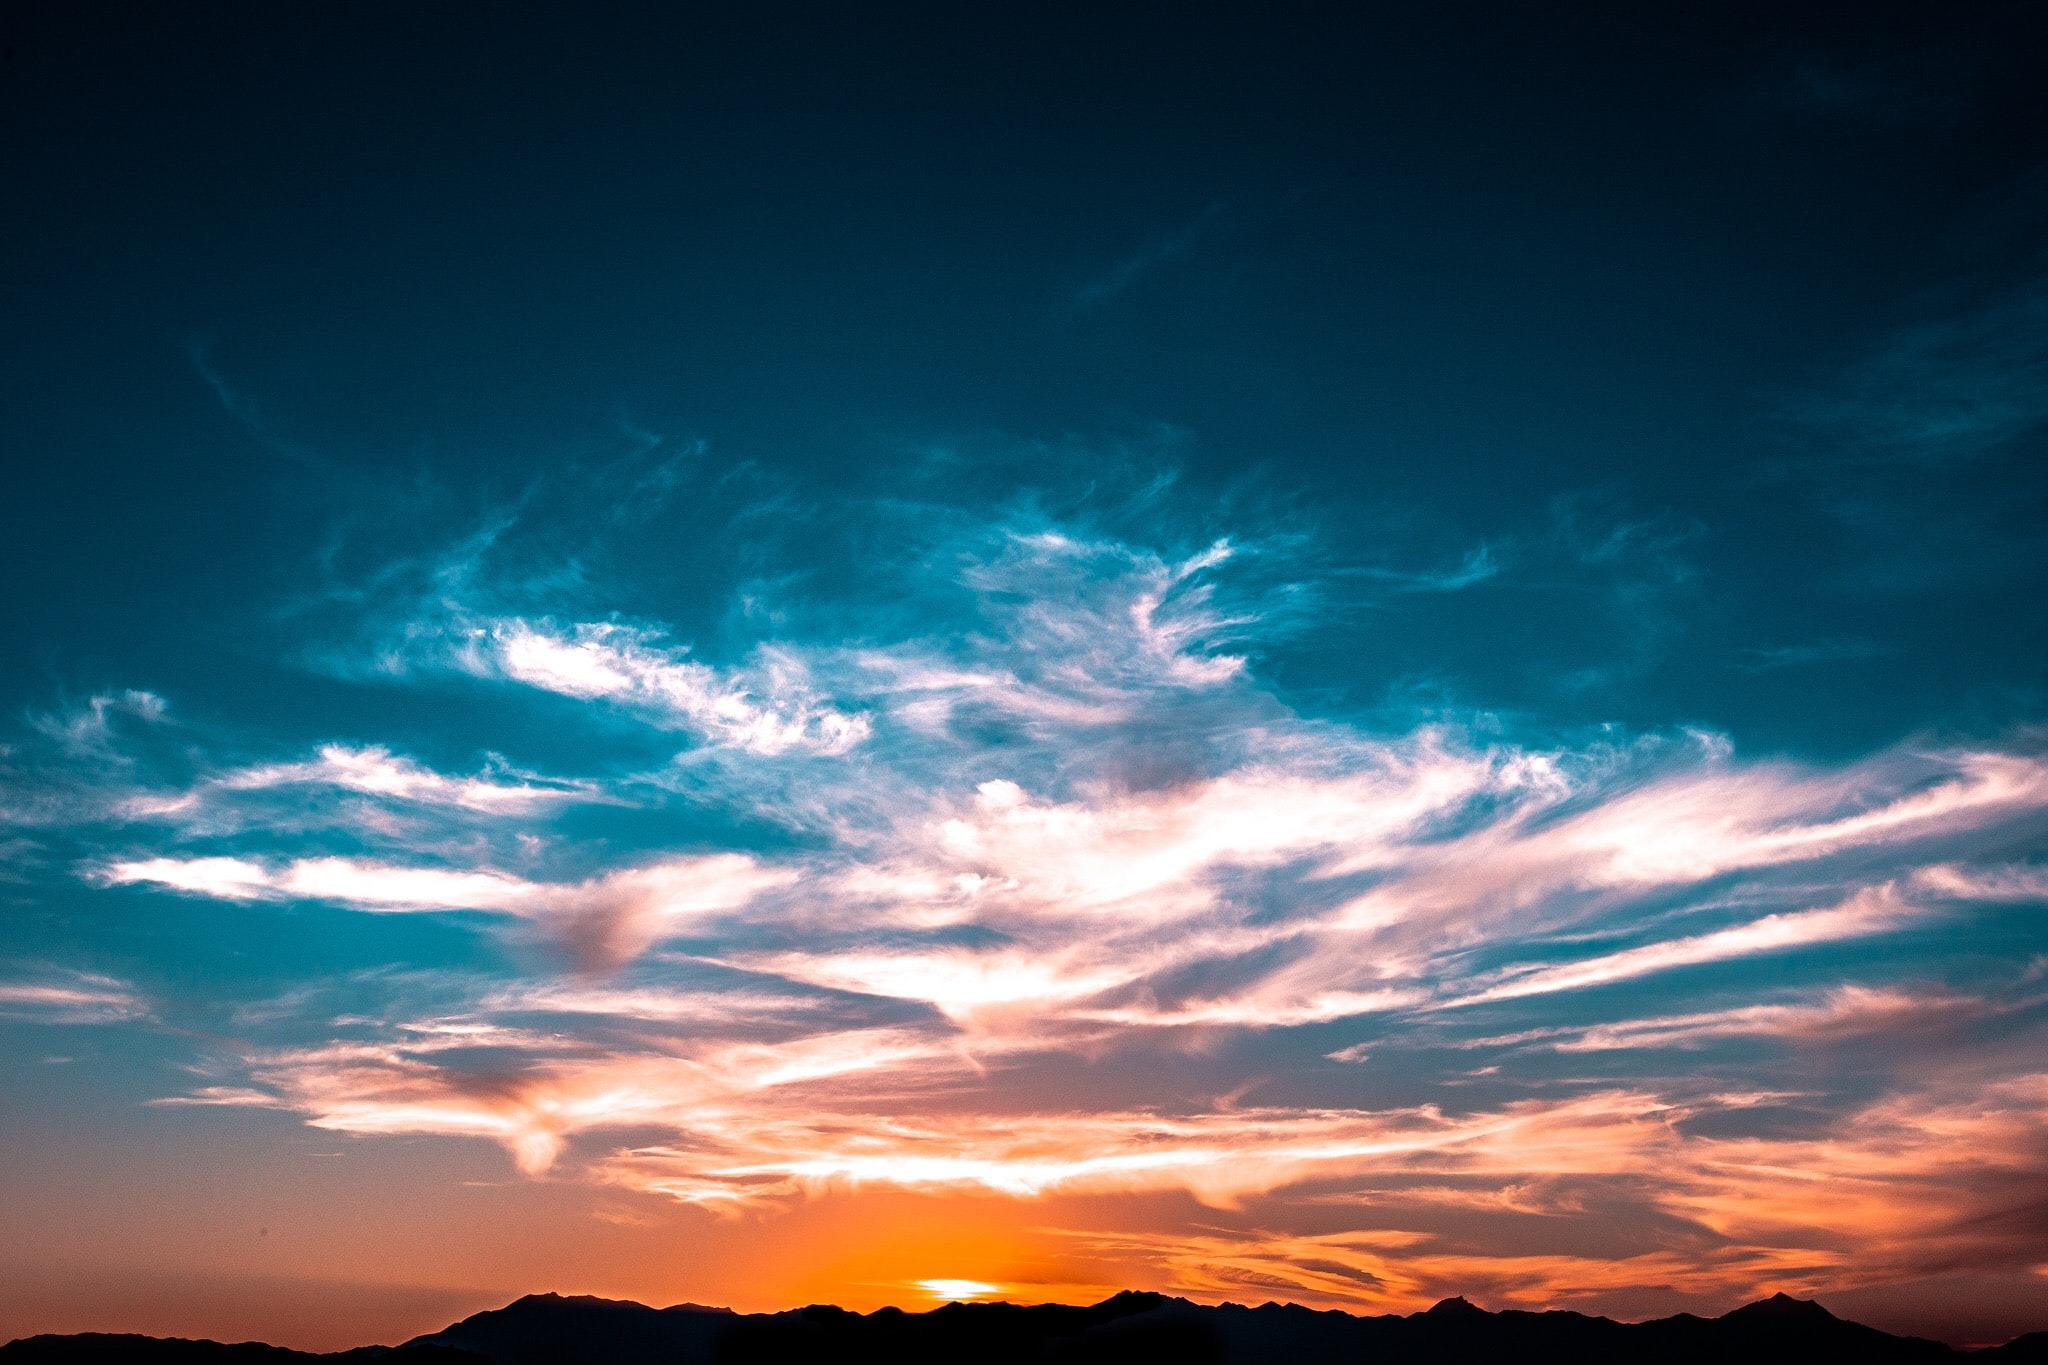 Wispy clouds against the illuminated orange and blue sky with the sun behind the hills.